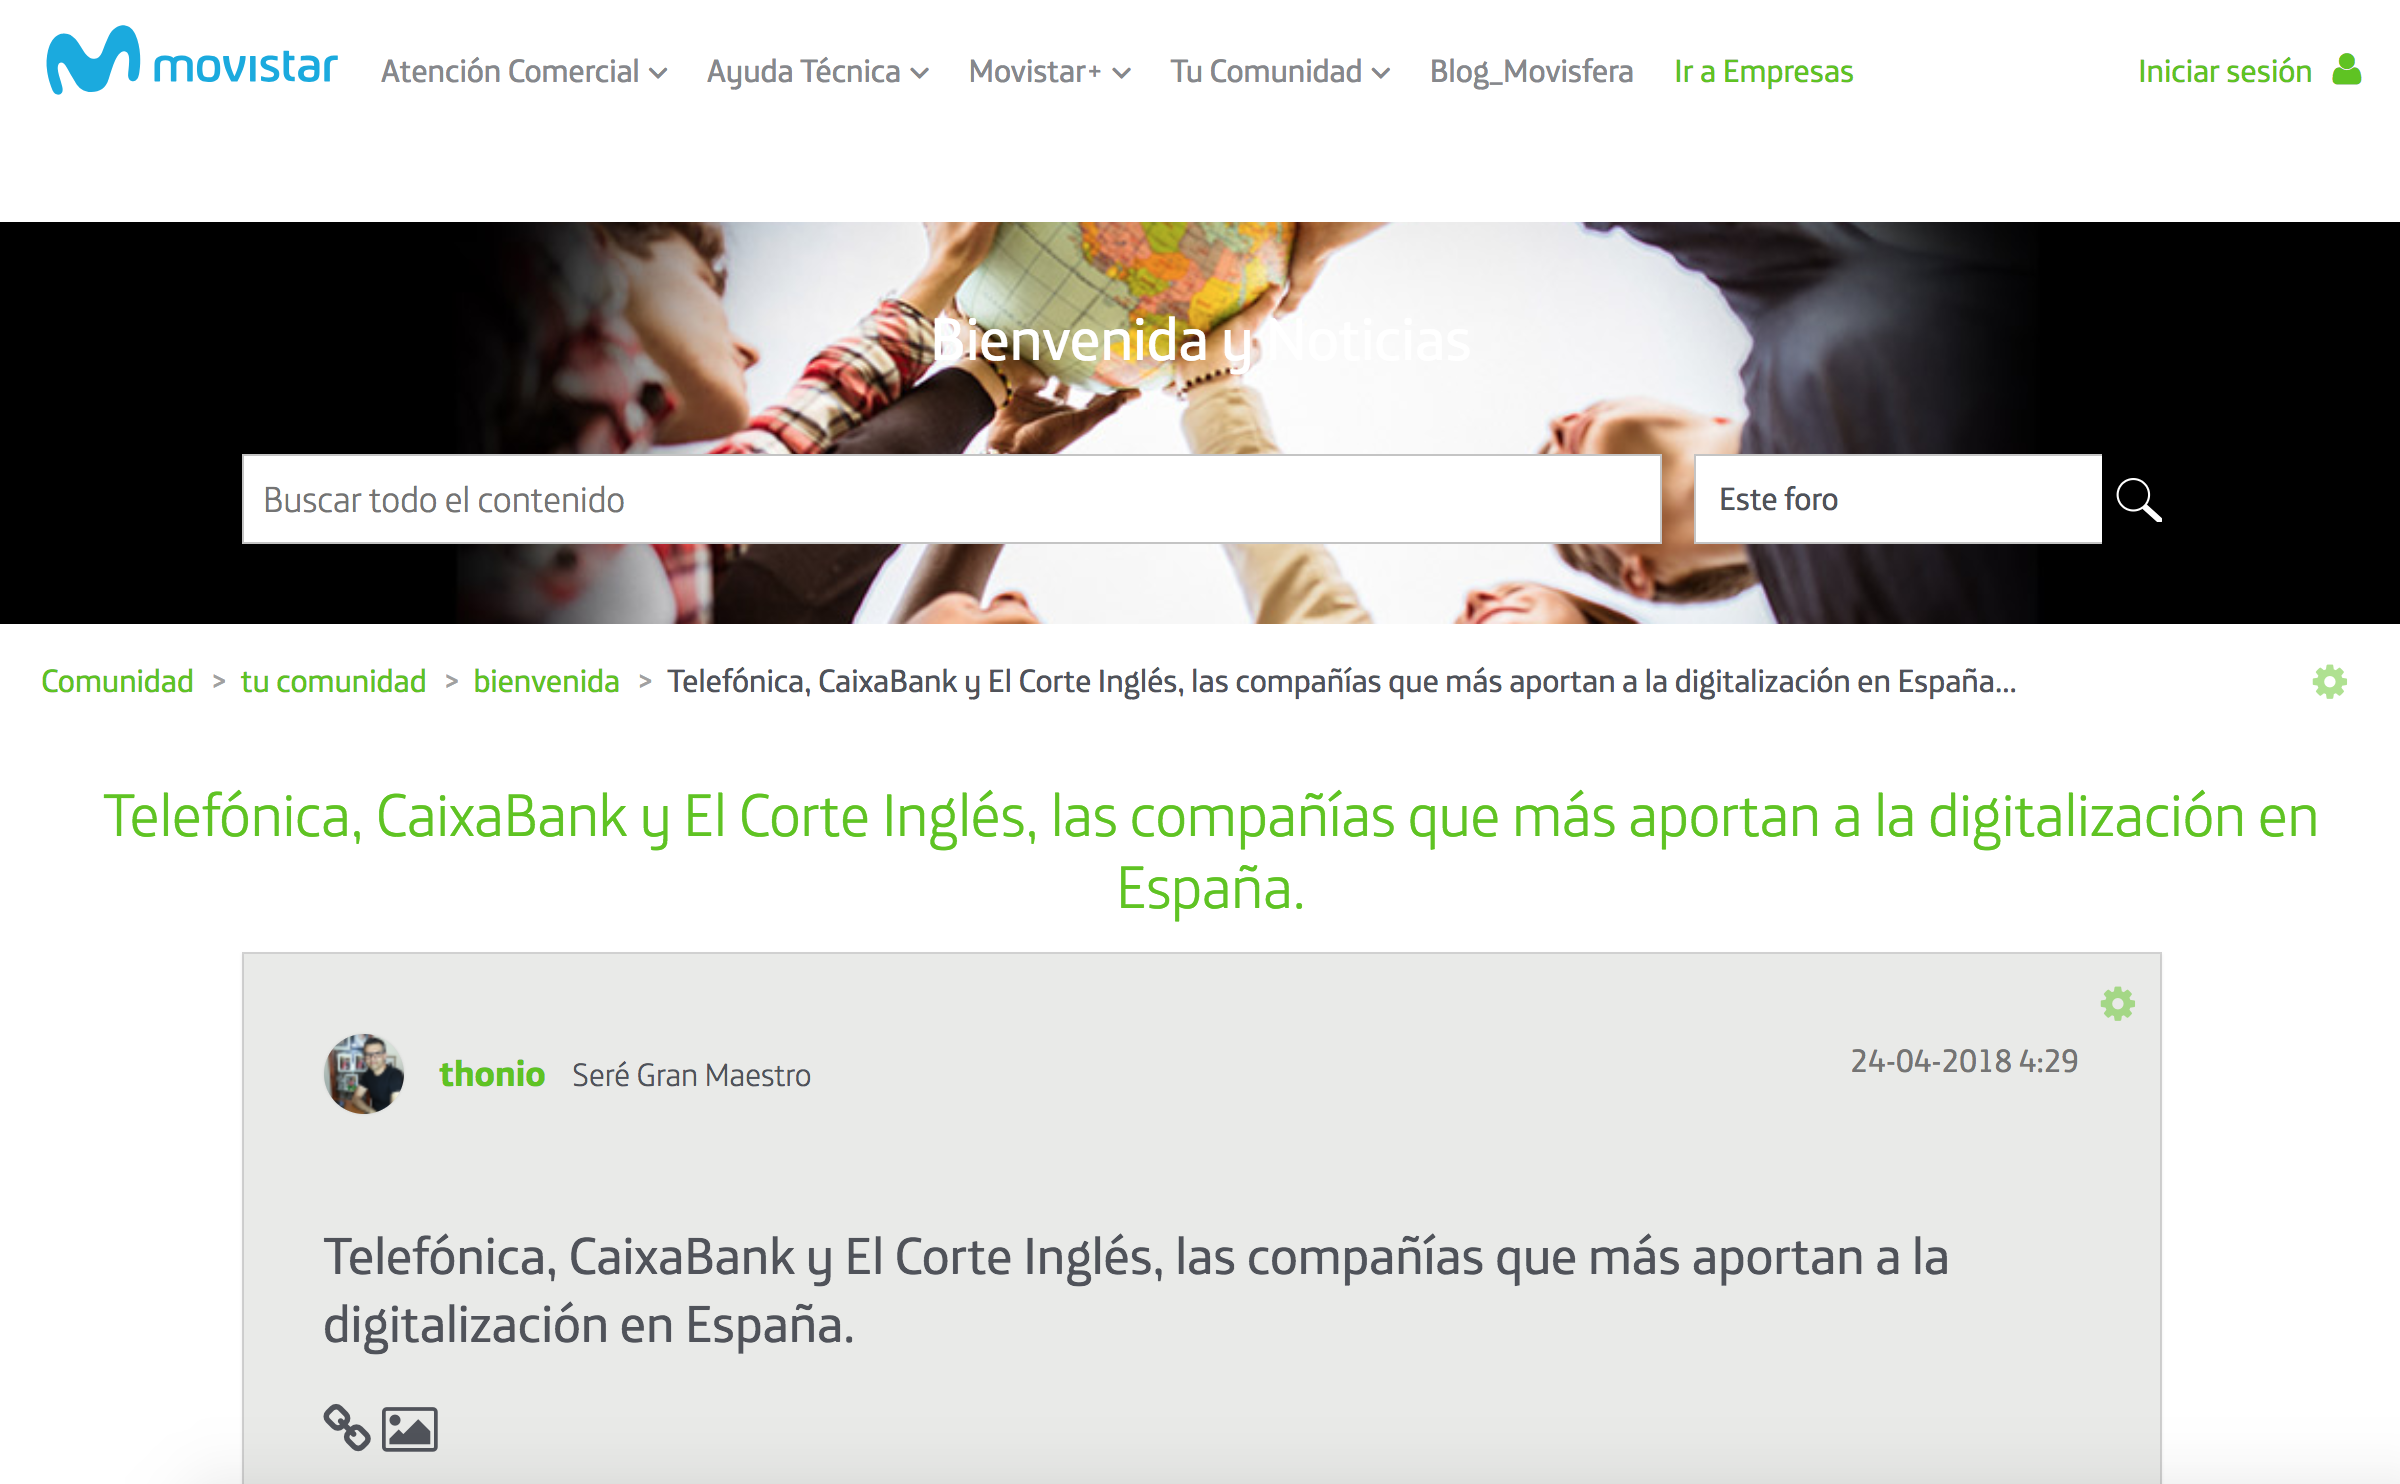 Press release about results of the Advice's Business Success Study in Comunidad Movistar